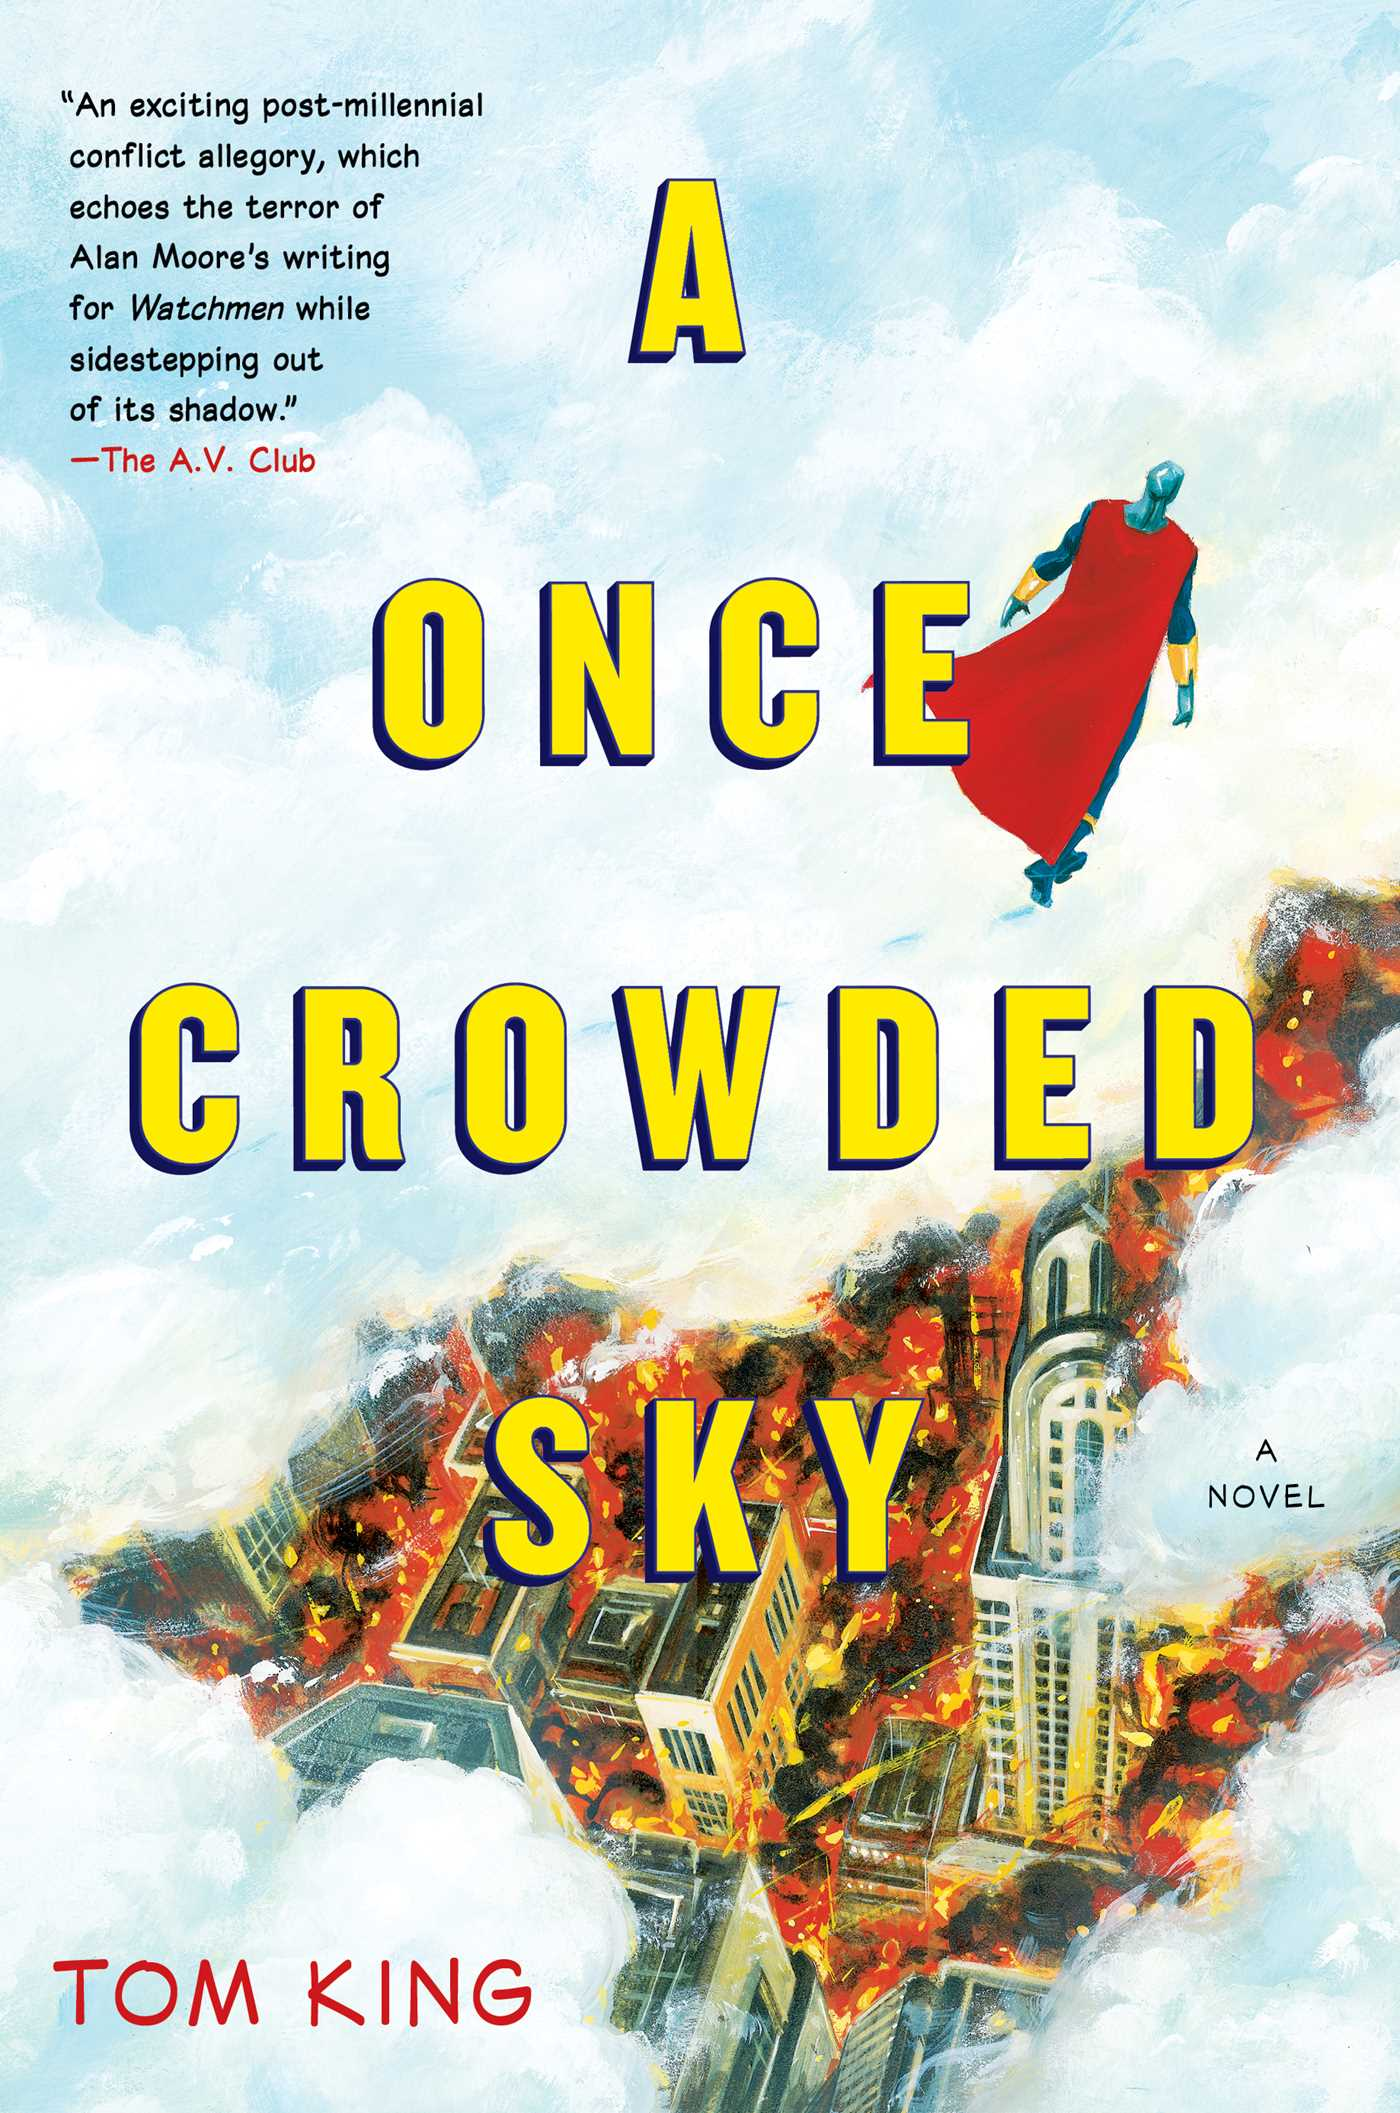 A-once-crowded-sky-9781451652017_hr